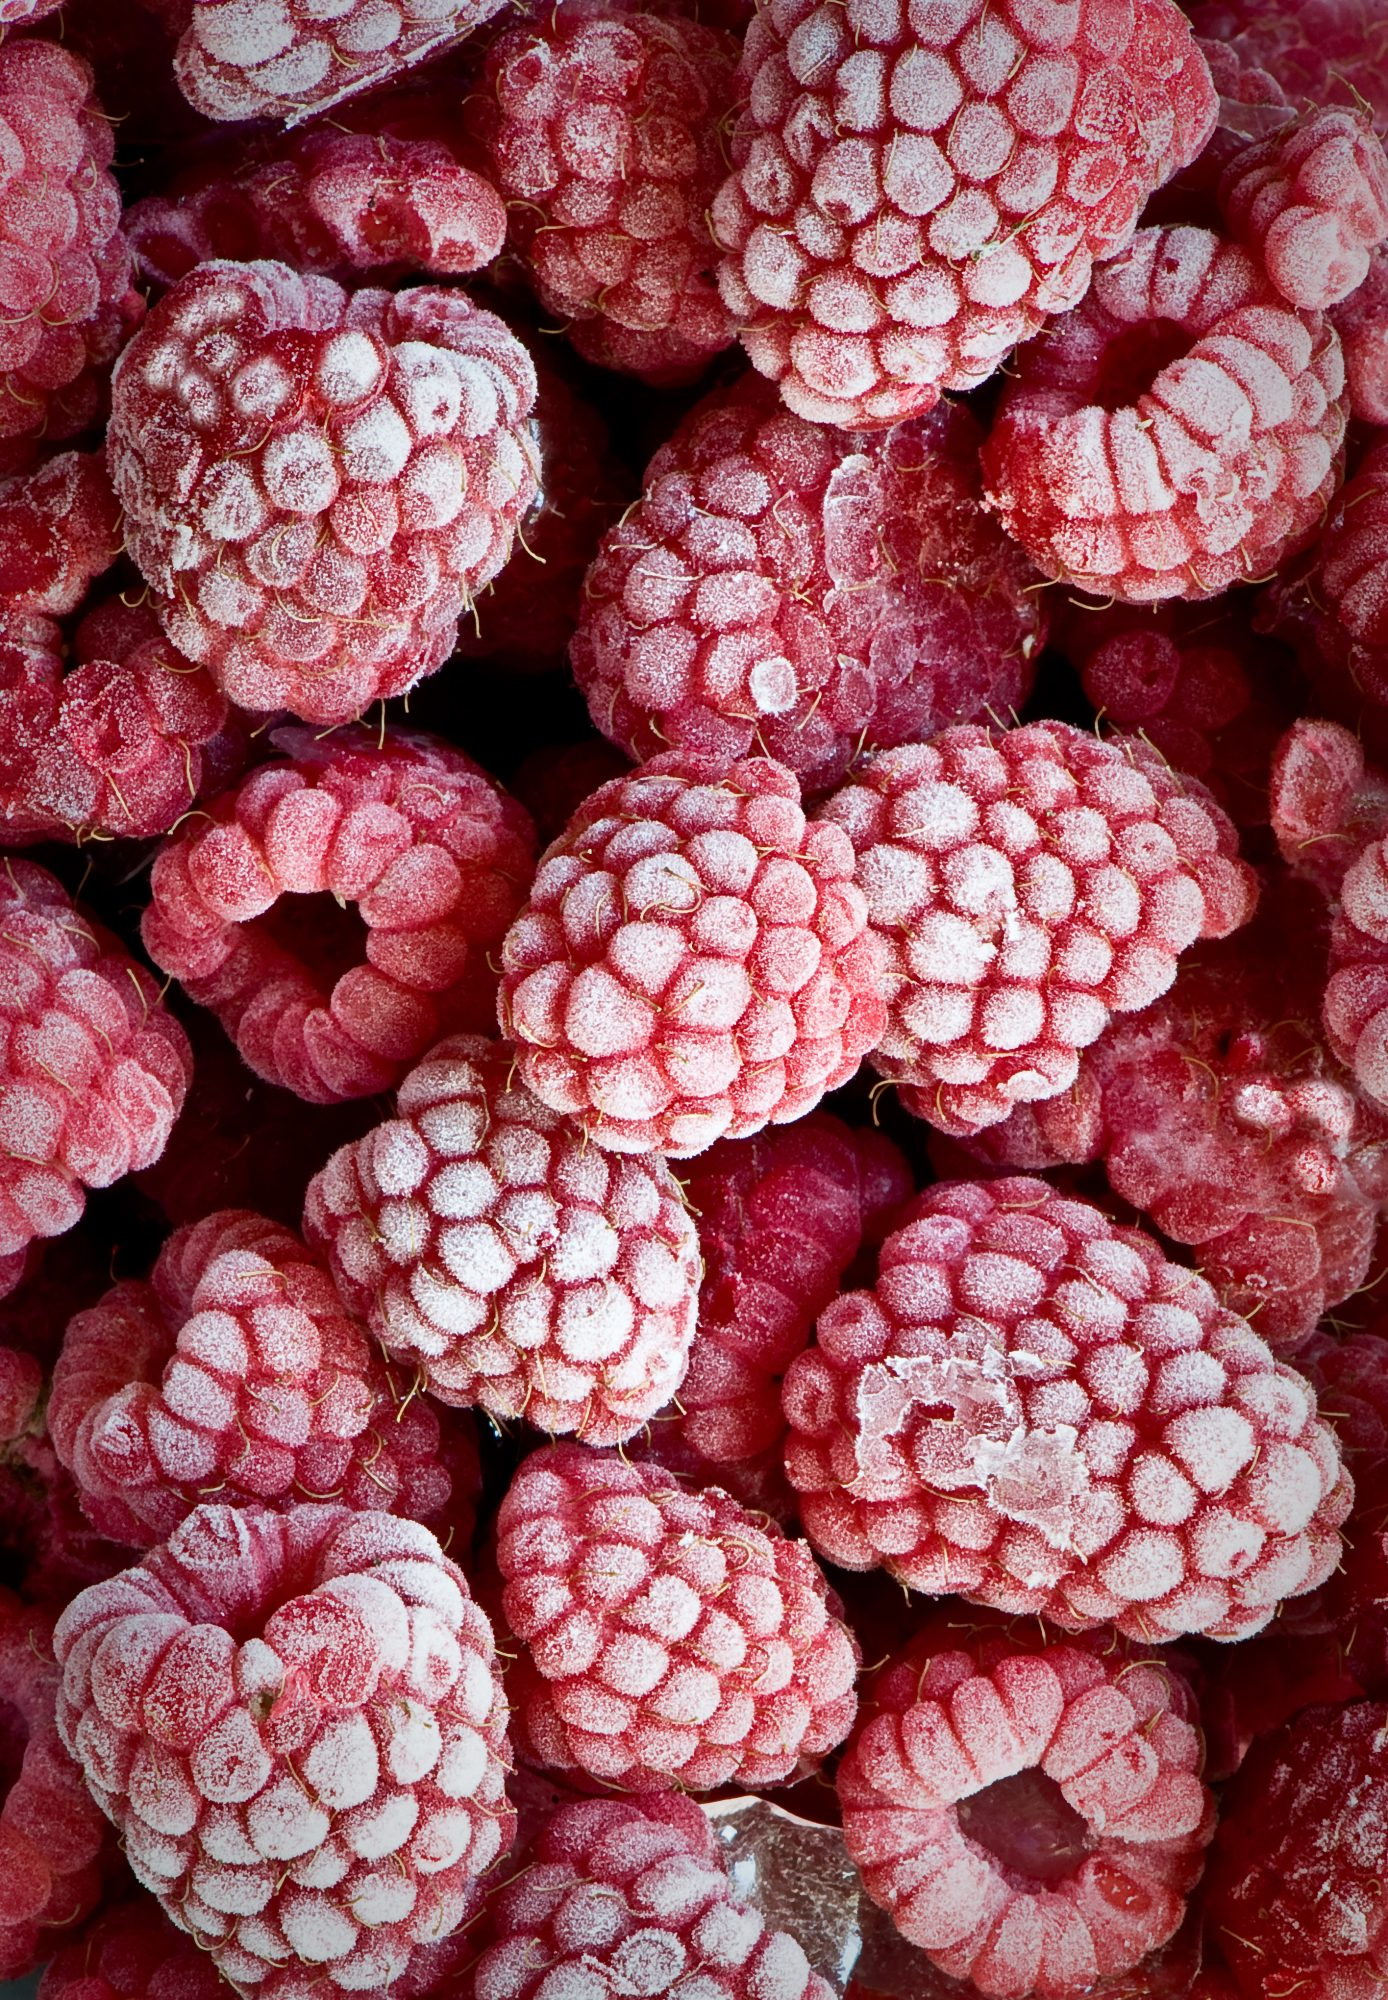 frozen-raspberries-fruit